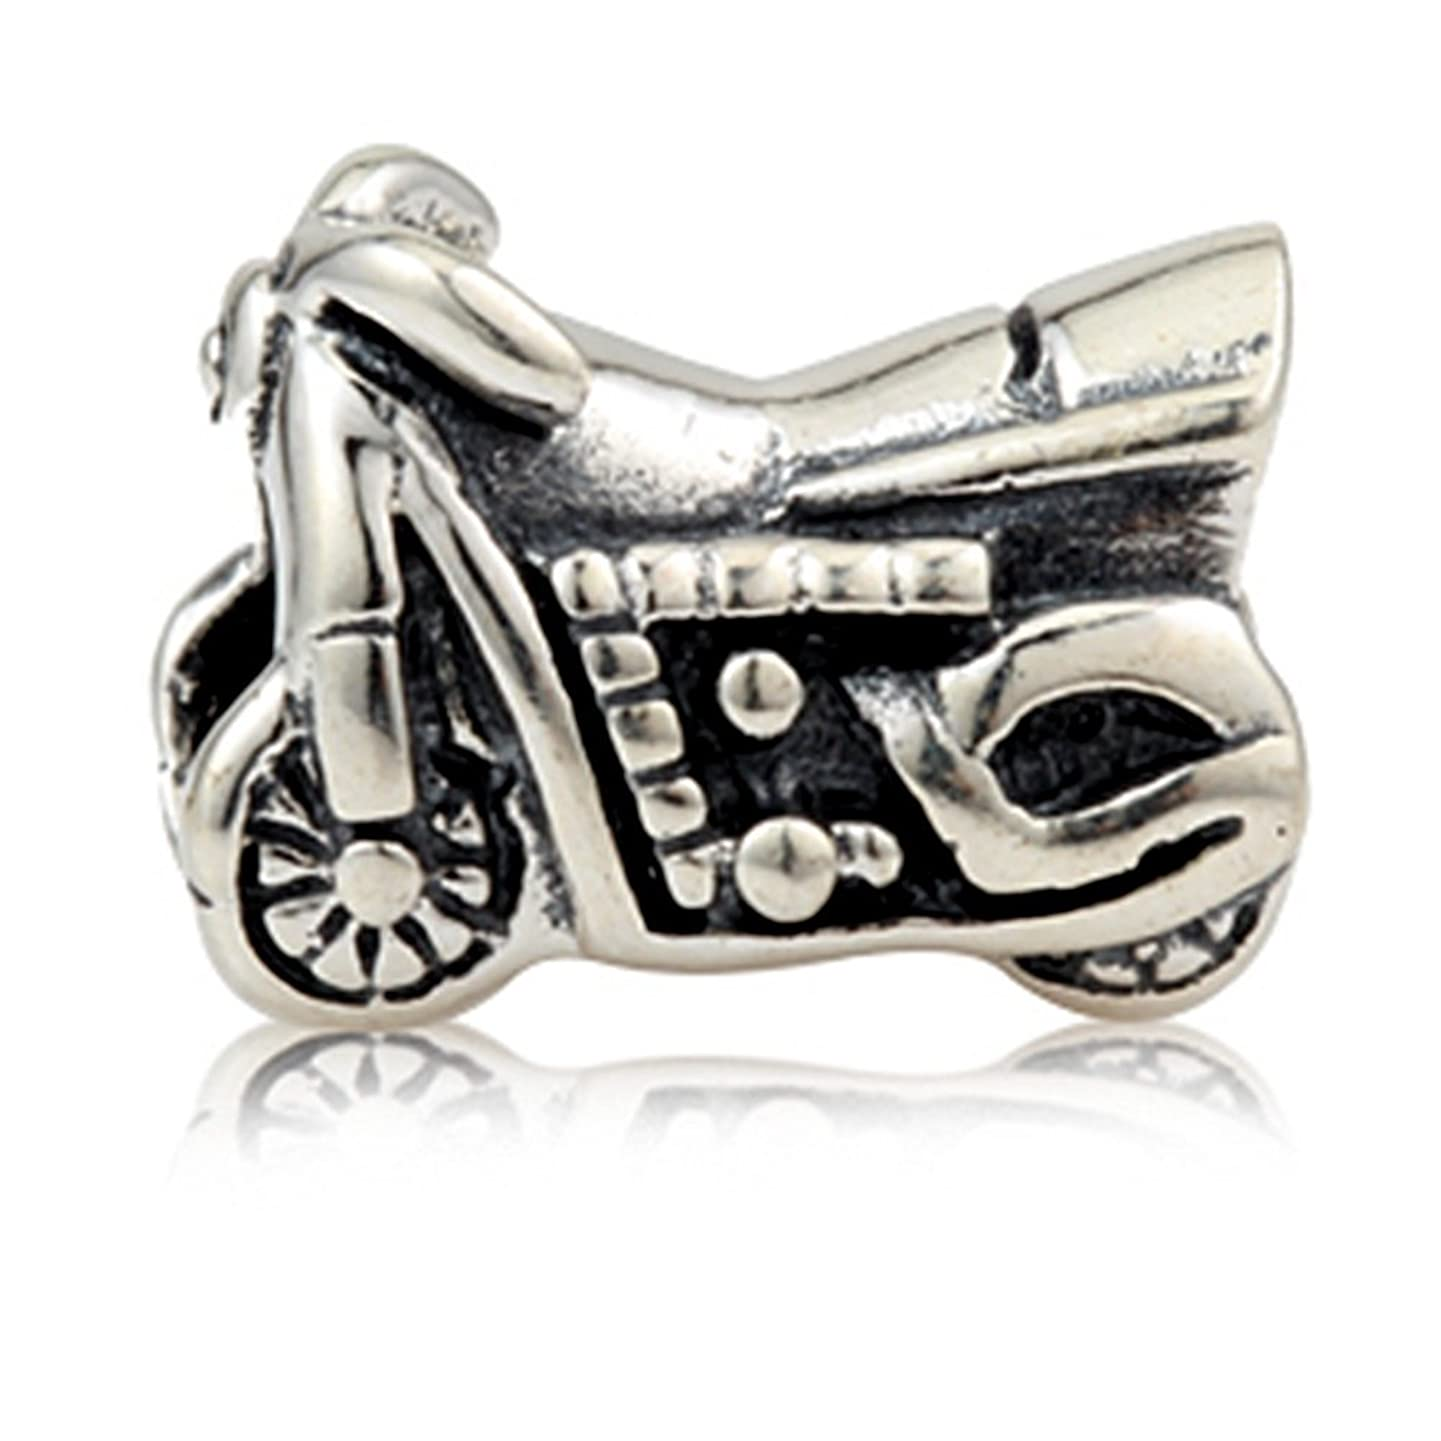 Motorcycle Beads Charm 925 Sterling Silver Autobike Beads fit for DIY Charms Bracelets